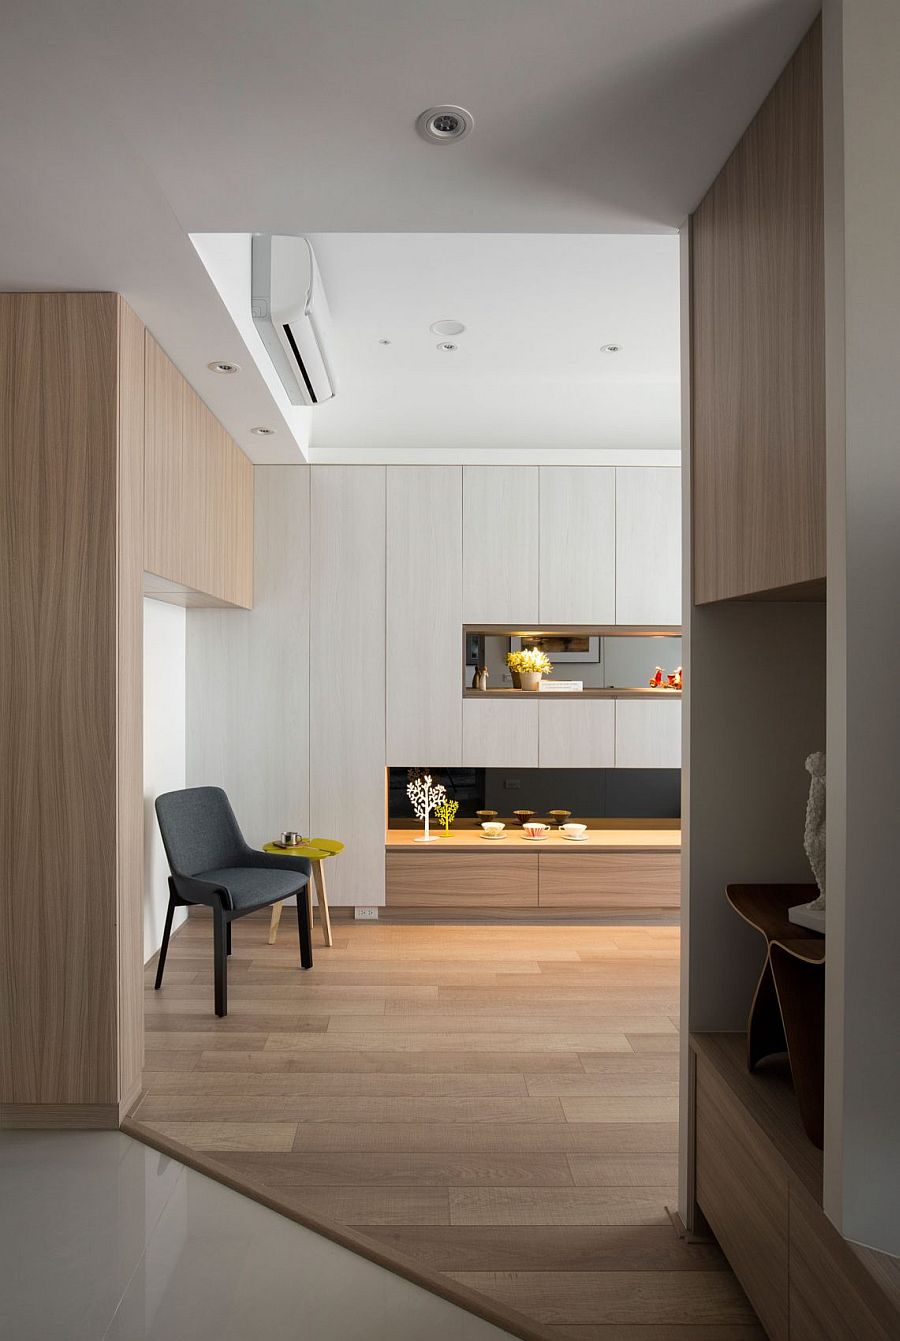 Wood and white create an inviting contemporary residence